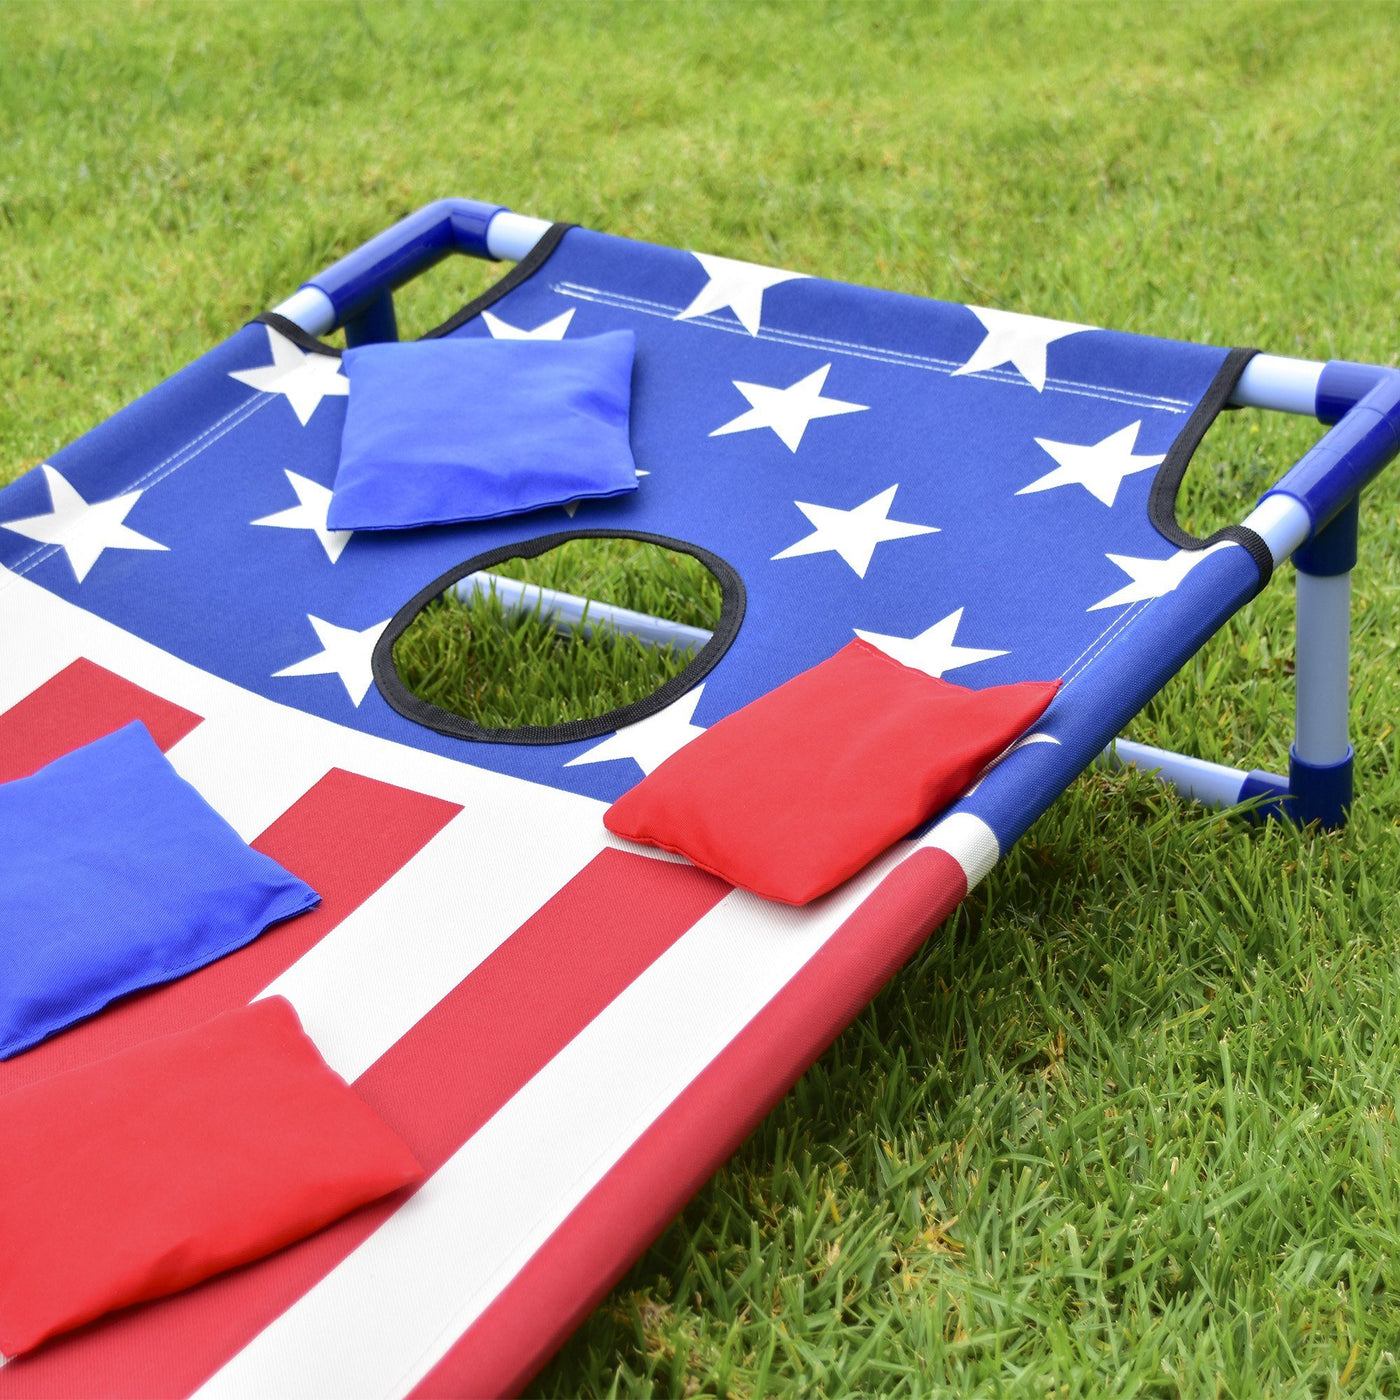 Portable PVC Framed Cornhole Game Set with Bags and Travel Carrying Case